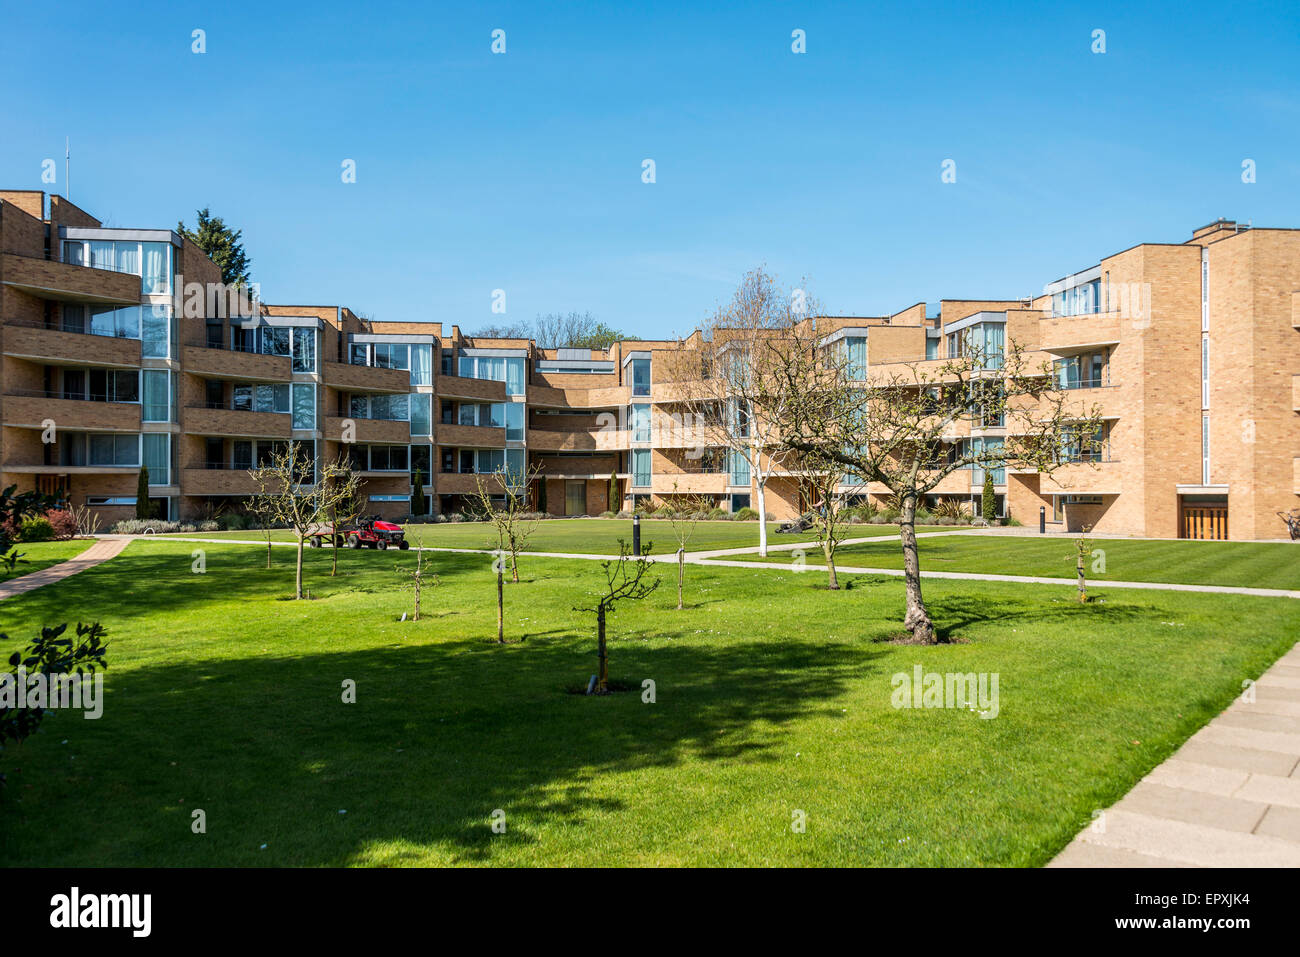 student accommodation at Jesus College, a college of the University of Cambridge - Stock Image